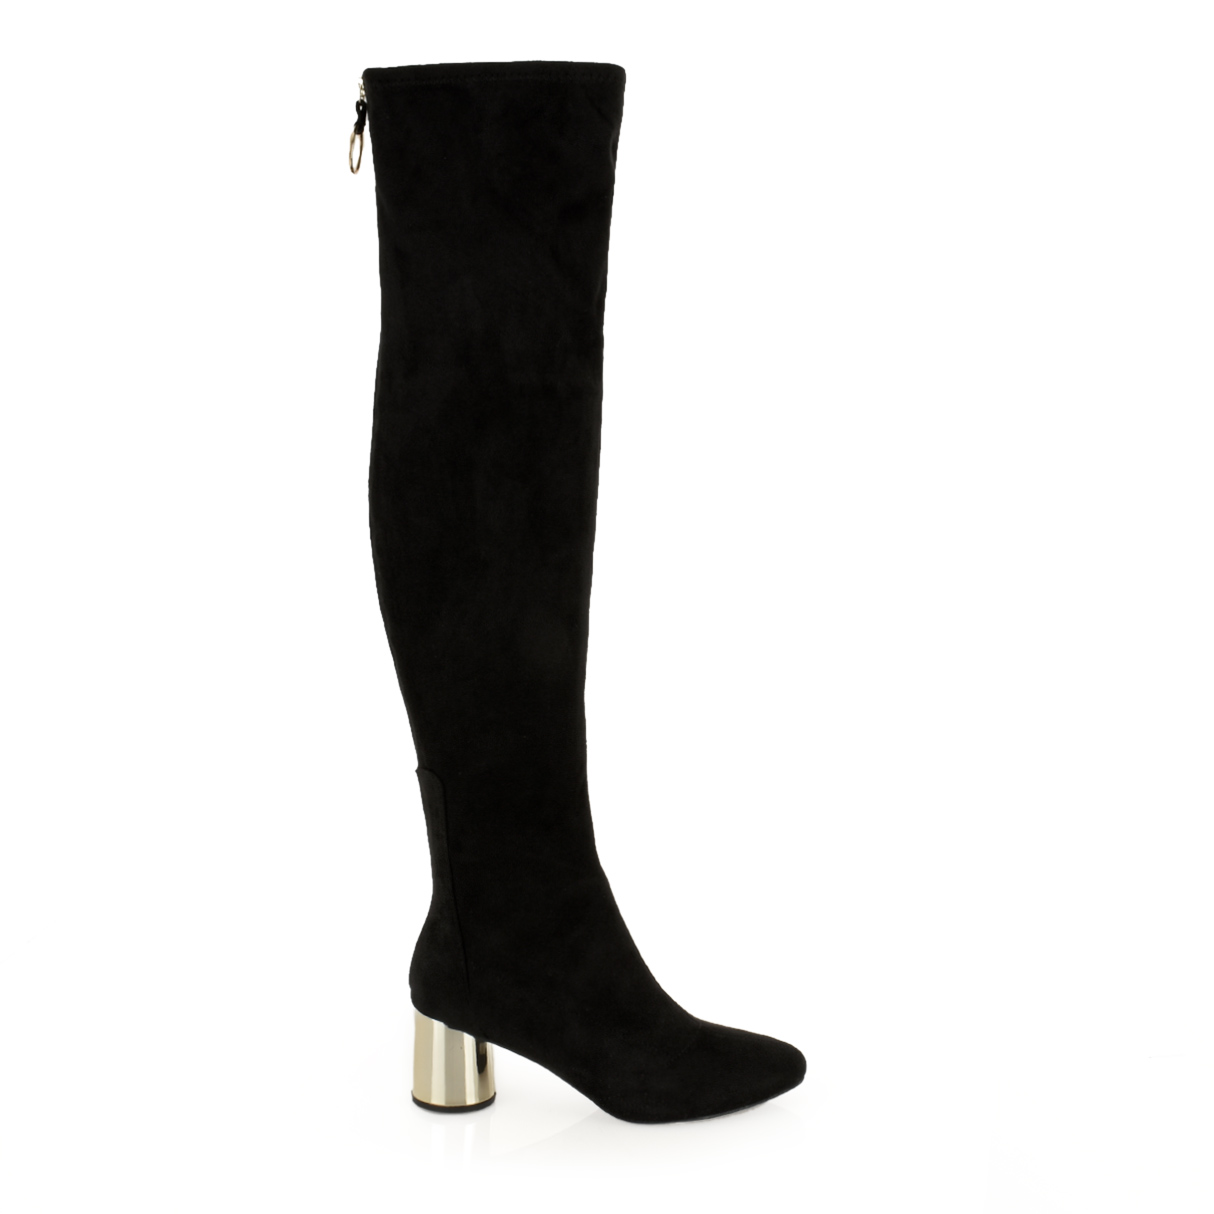 OVER THE KNEE BOOTS σχέδιο: H234S7243